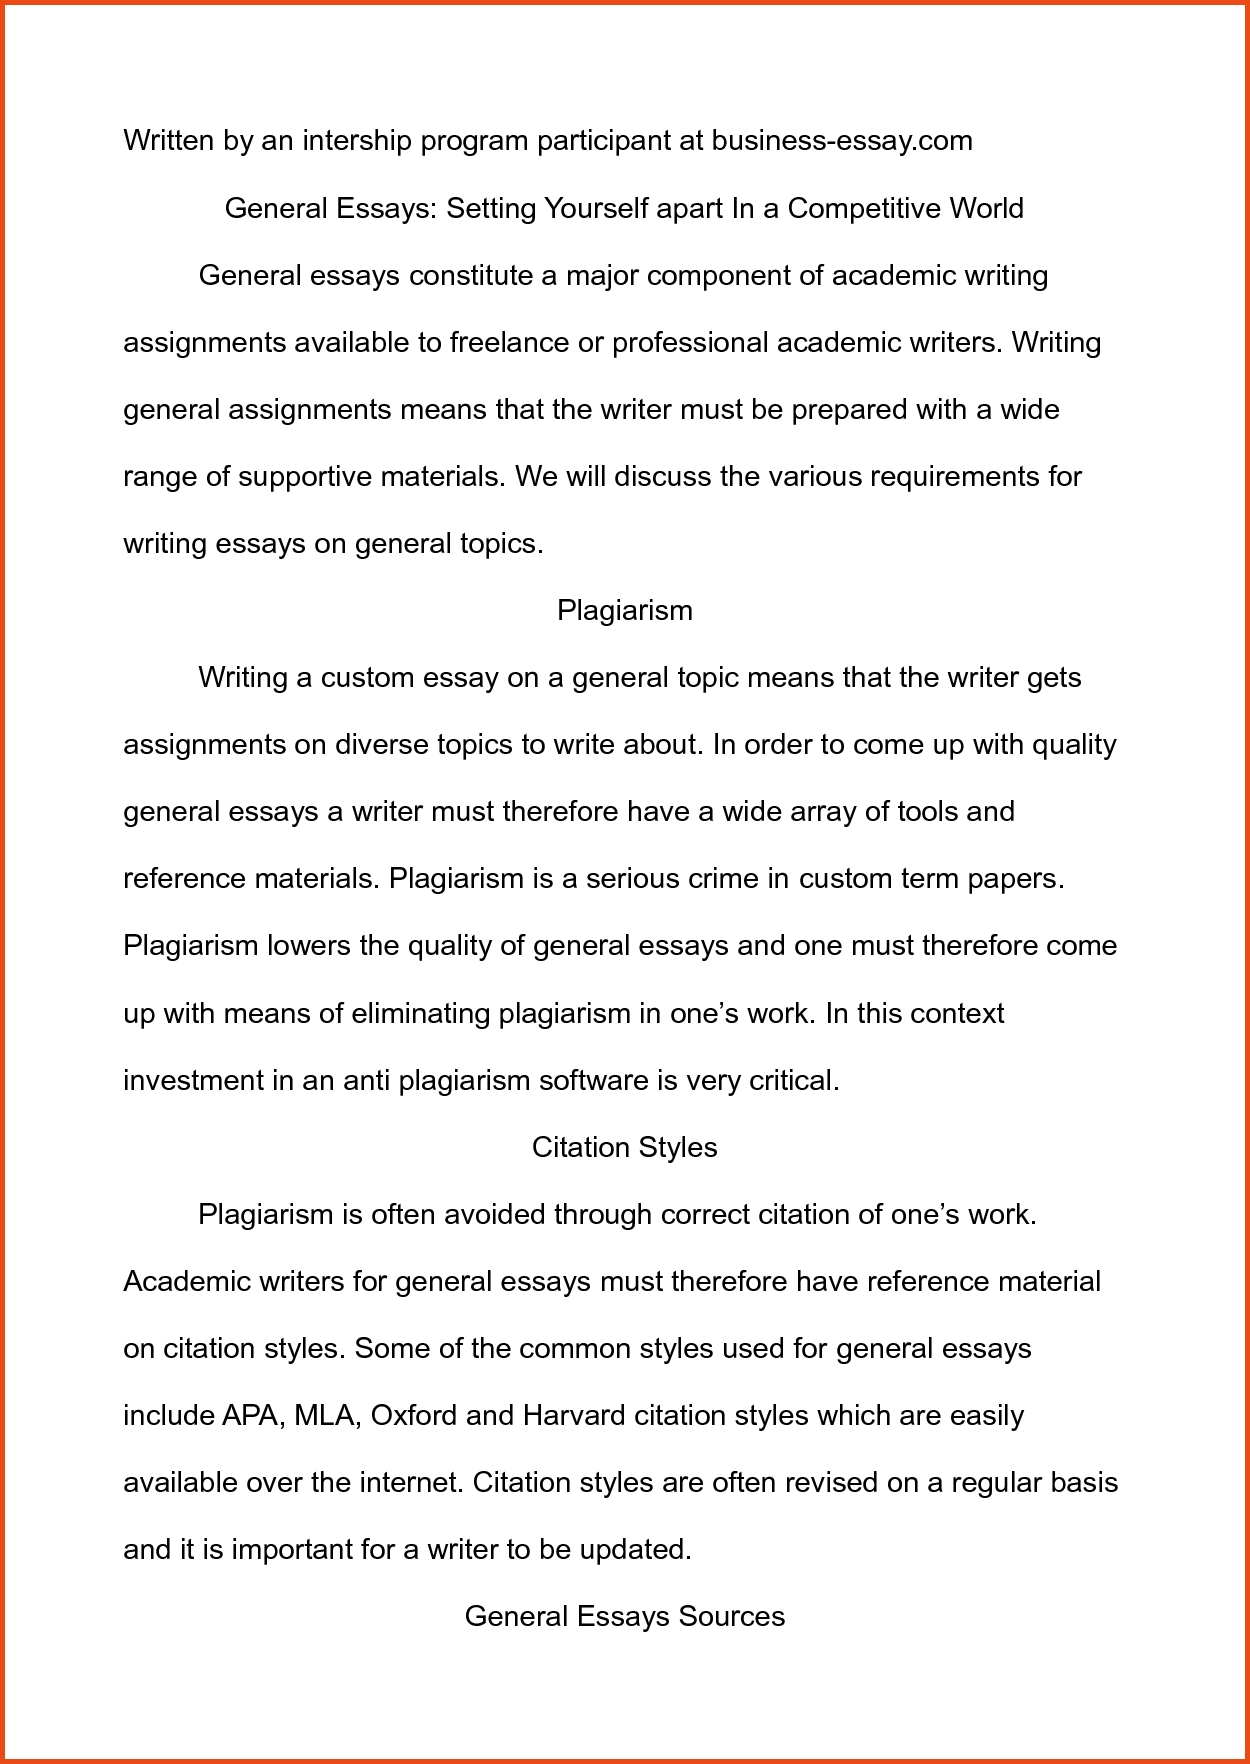 006 Essay Describing Yourself An Historical Architecture Cv On Sample Myself Writing Introducing Essays About Introduce Intended For College Exam Pdf In French Hindi Example Unusual Introduction Urdu Full